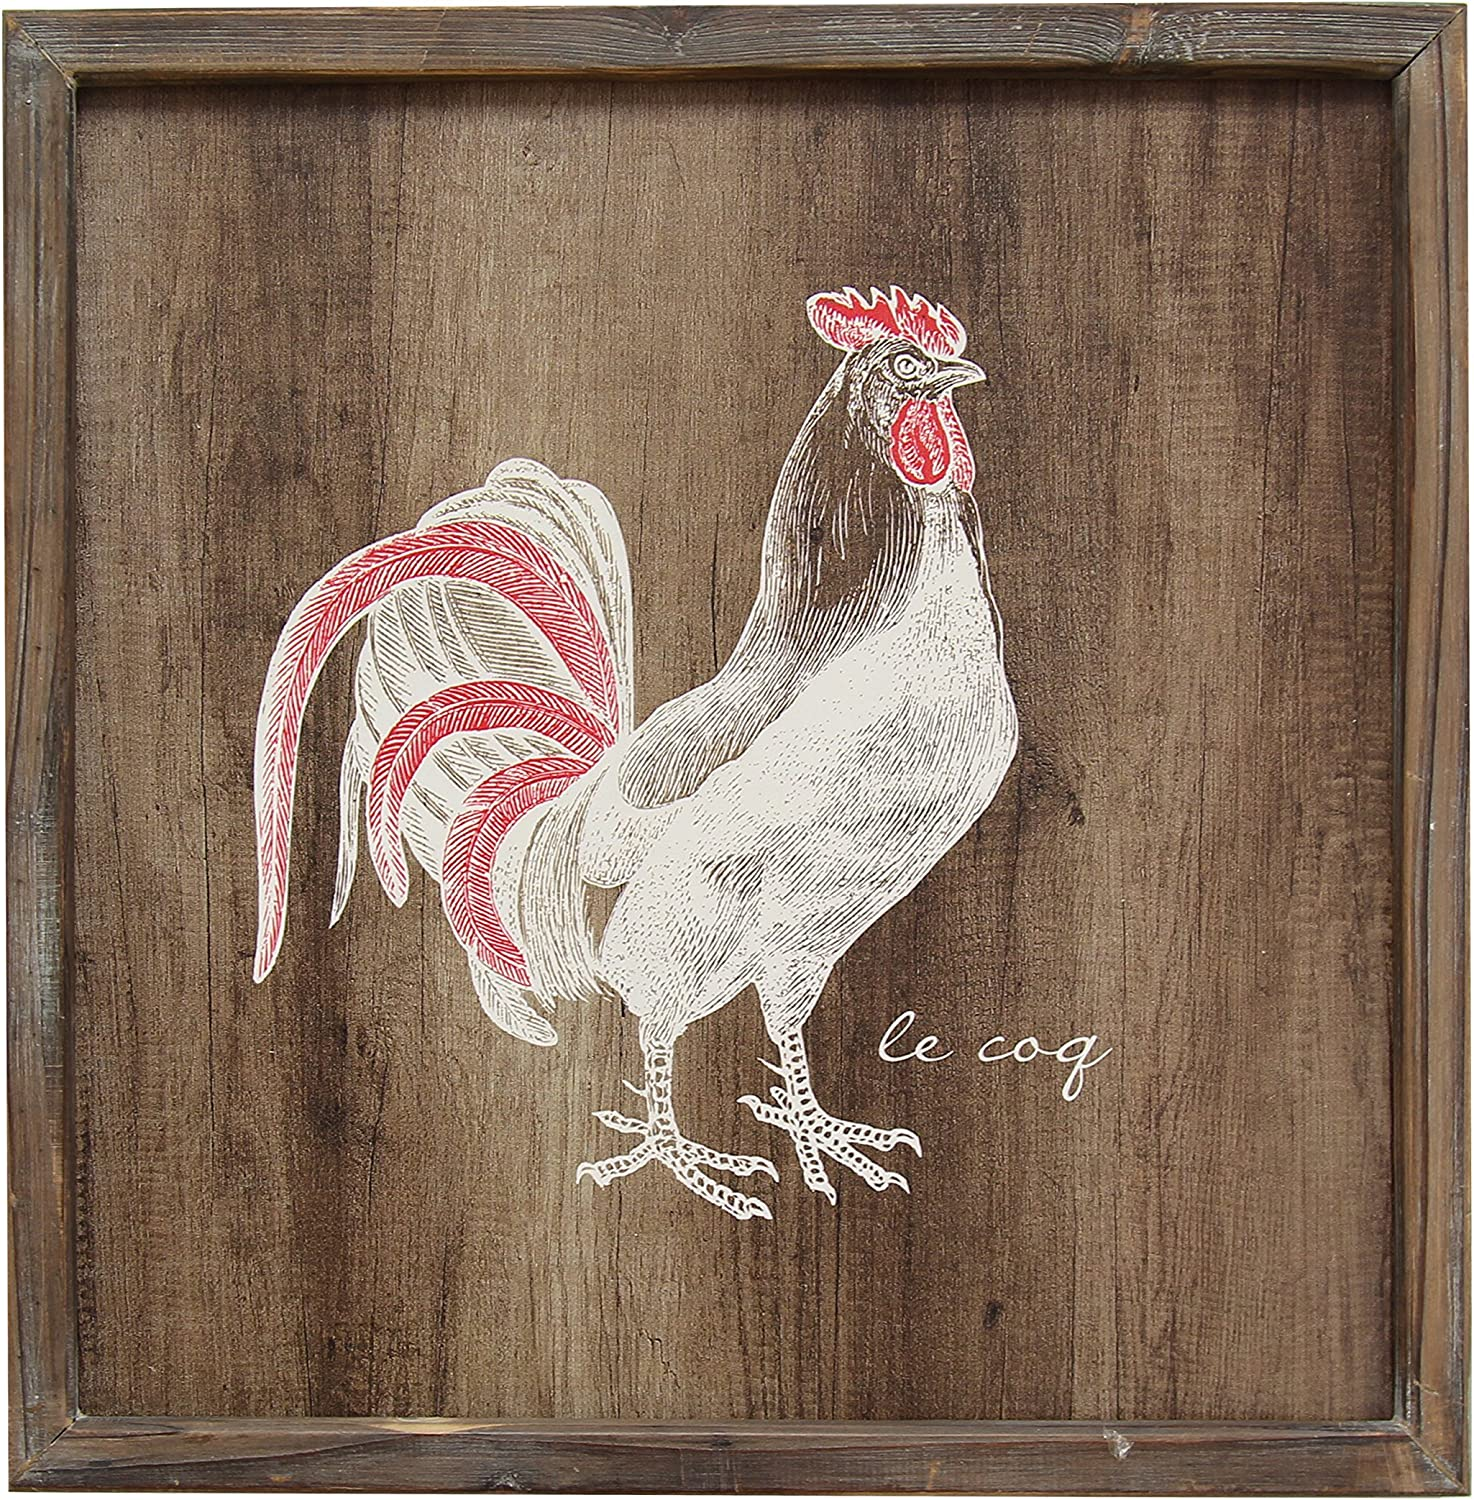 Stratton Home Décor S01988 Rooster Wall Art